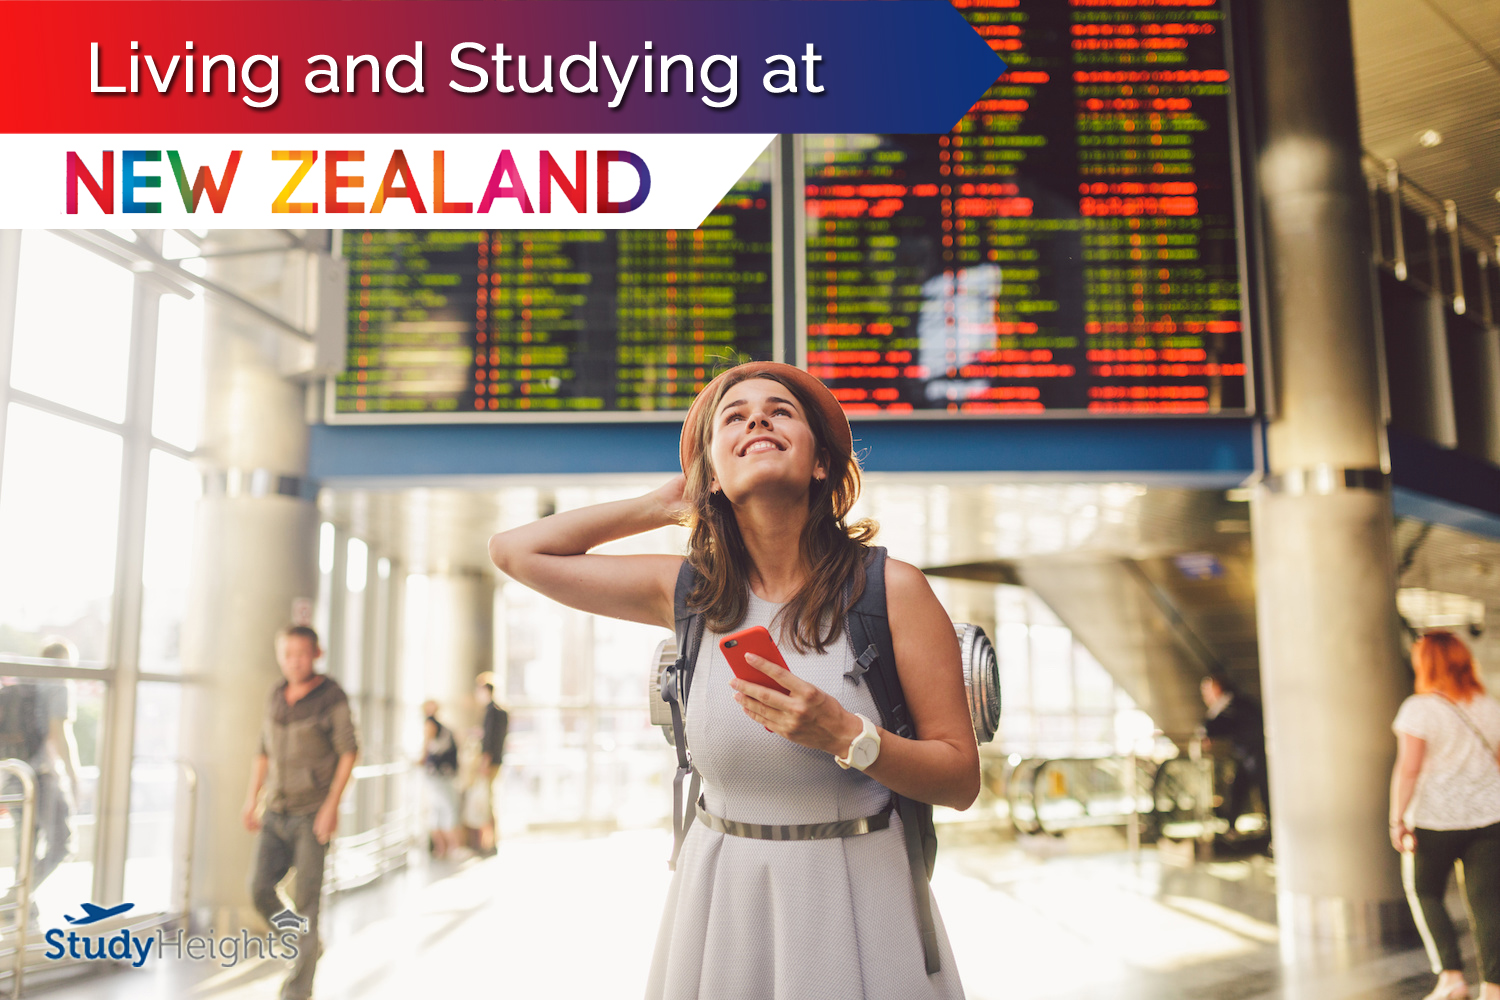 Living and Studying at New Zealand Study Heights